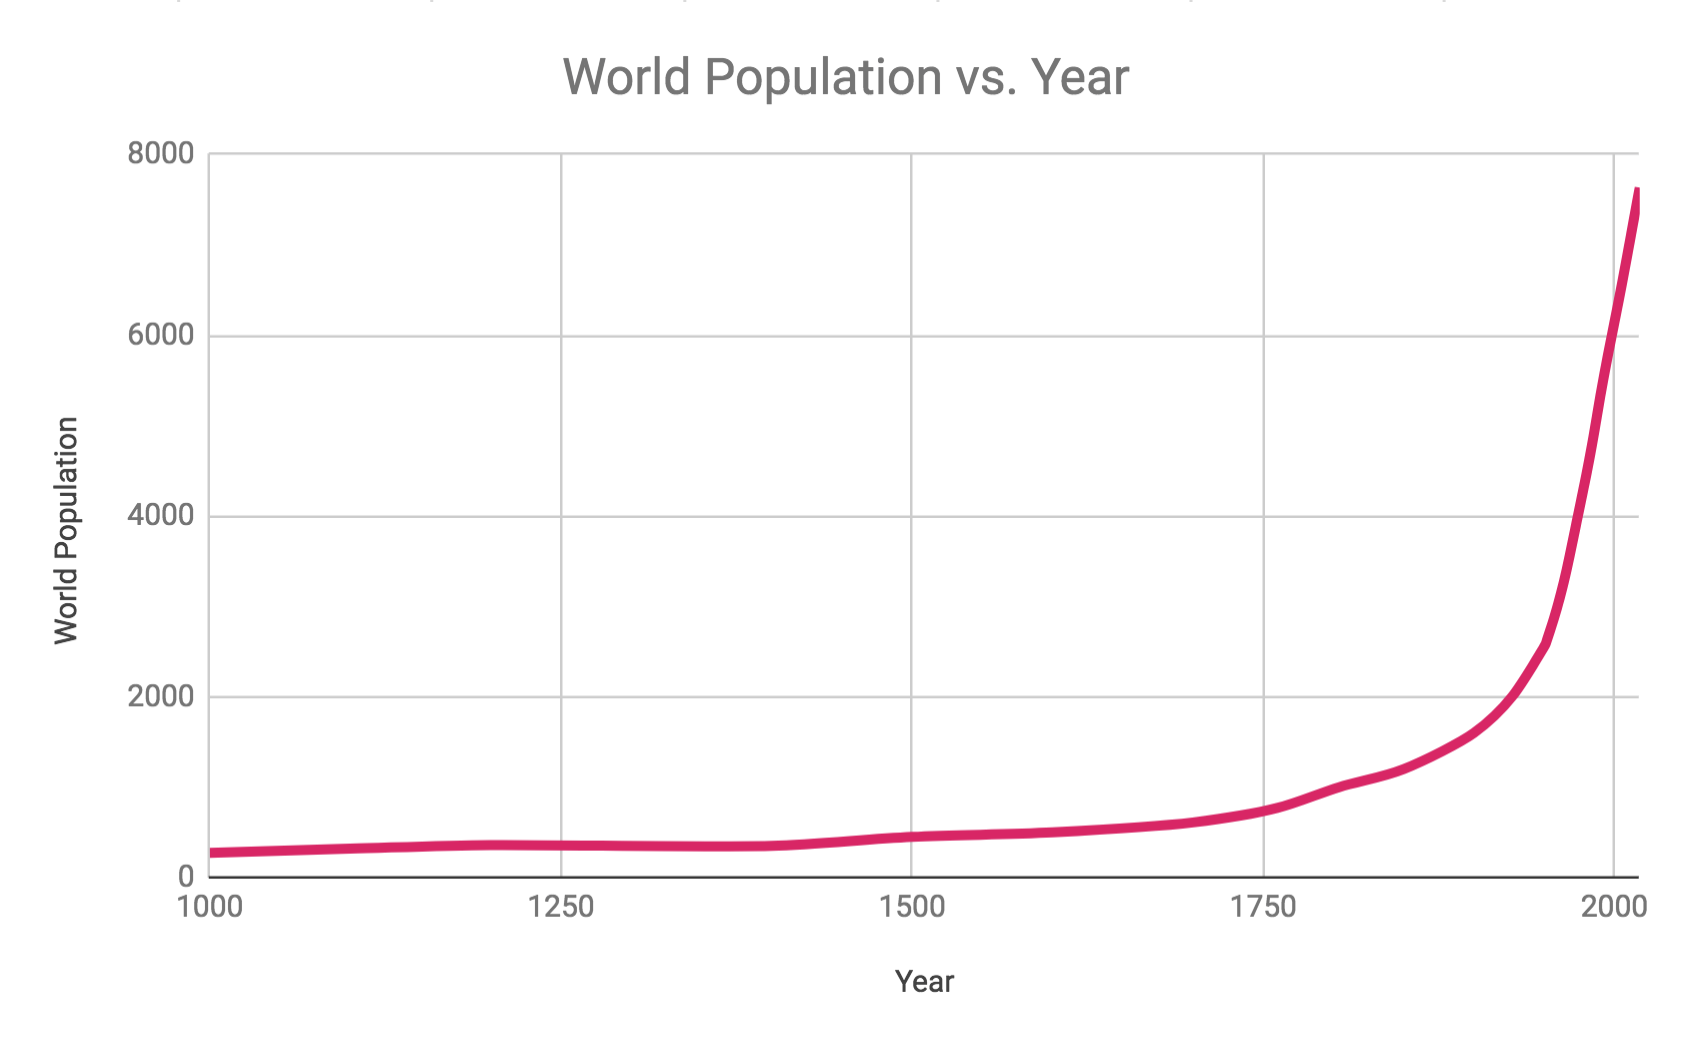 Data from the Worldometer. Raw Data - http://www.worldometers.info/world-population/world-population-by-year/